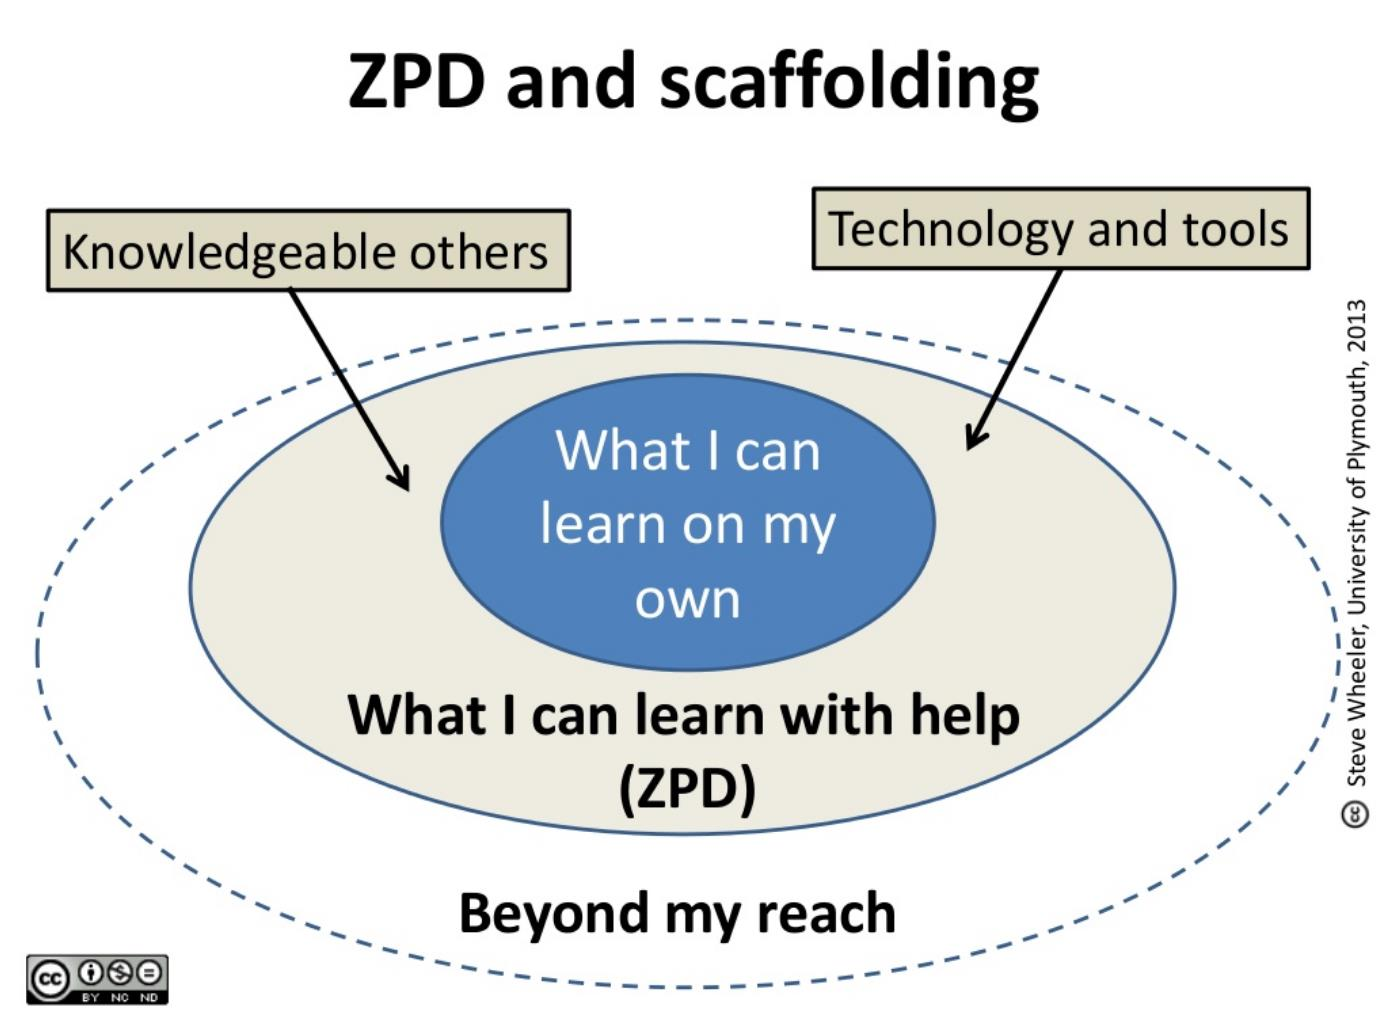 child development scaffolding Bruner believed that when children start to learn new concepts, they need help from in a very specific way, scaffolding represents a reduction in the many choices a child might face, so that they.